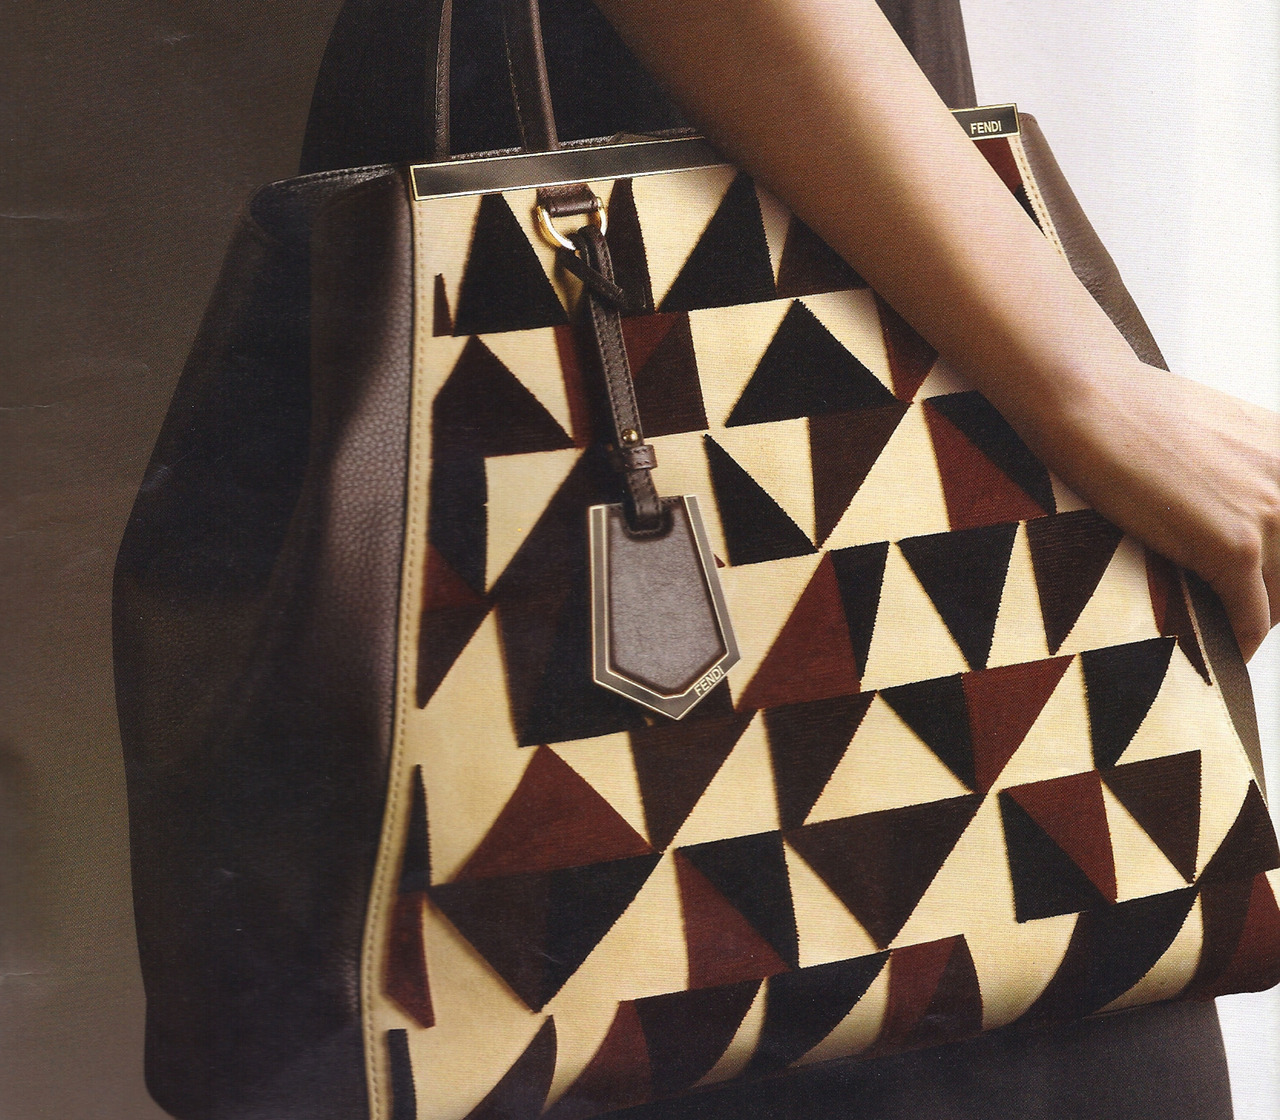 Fendi Cut-Velvet Pattern Tote. [Avail for pre-order @Neiman Marcus.com].